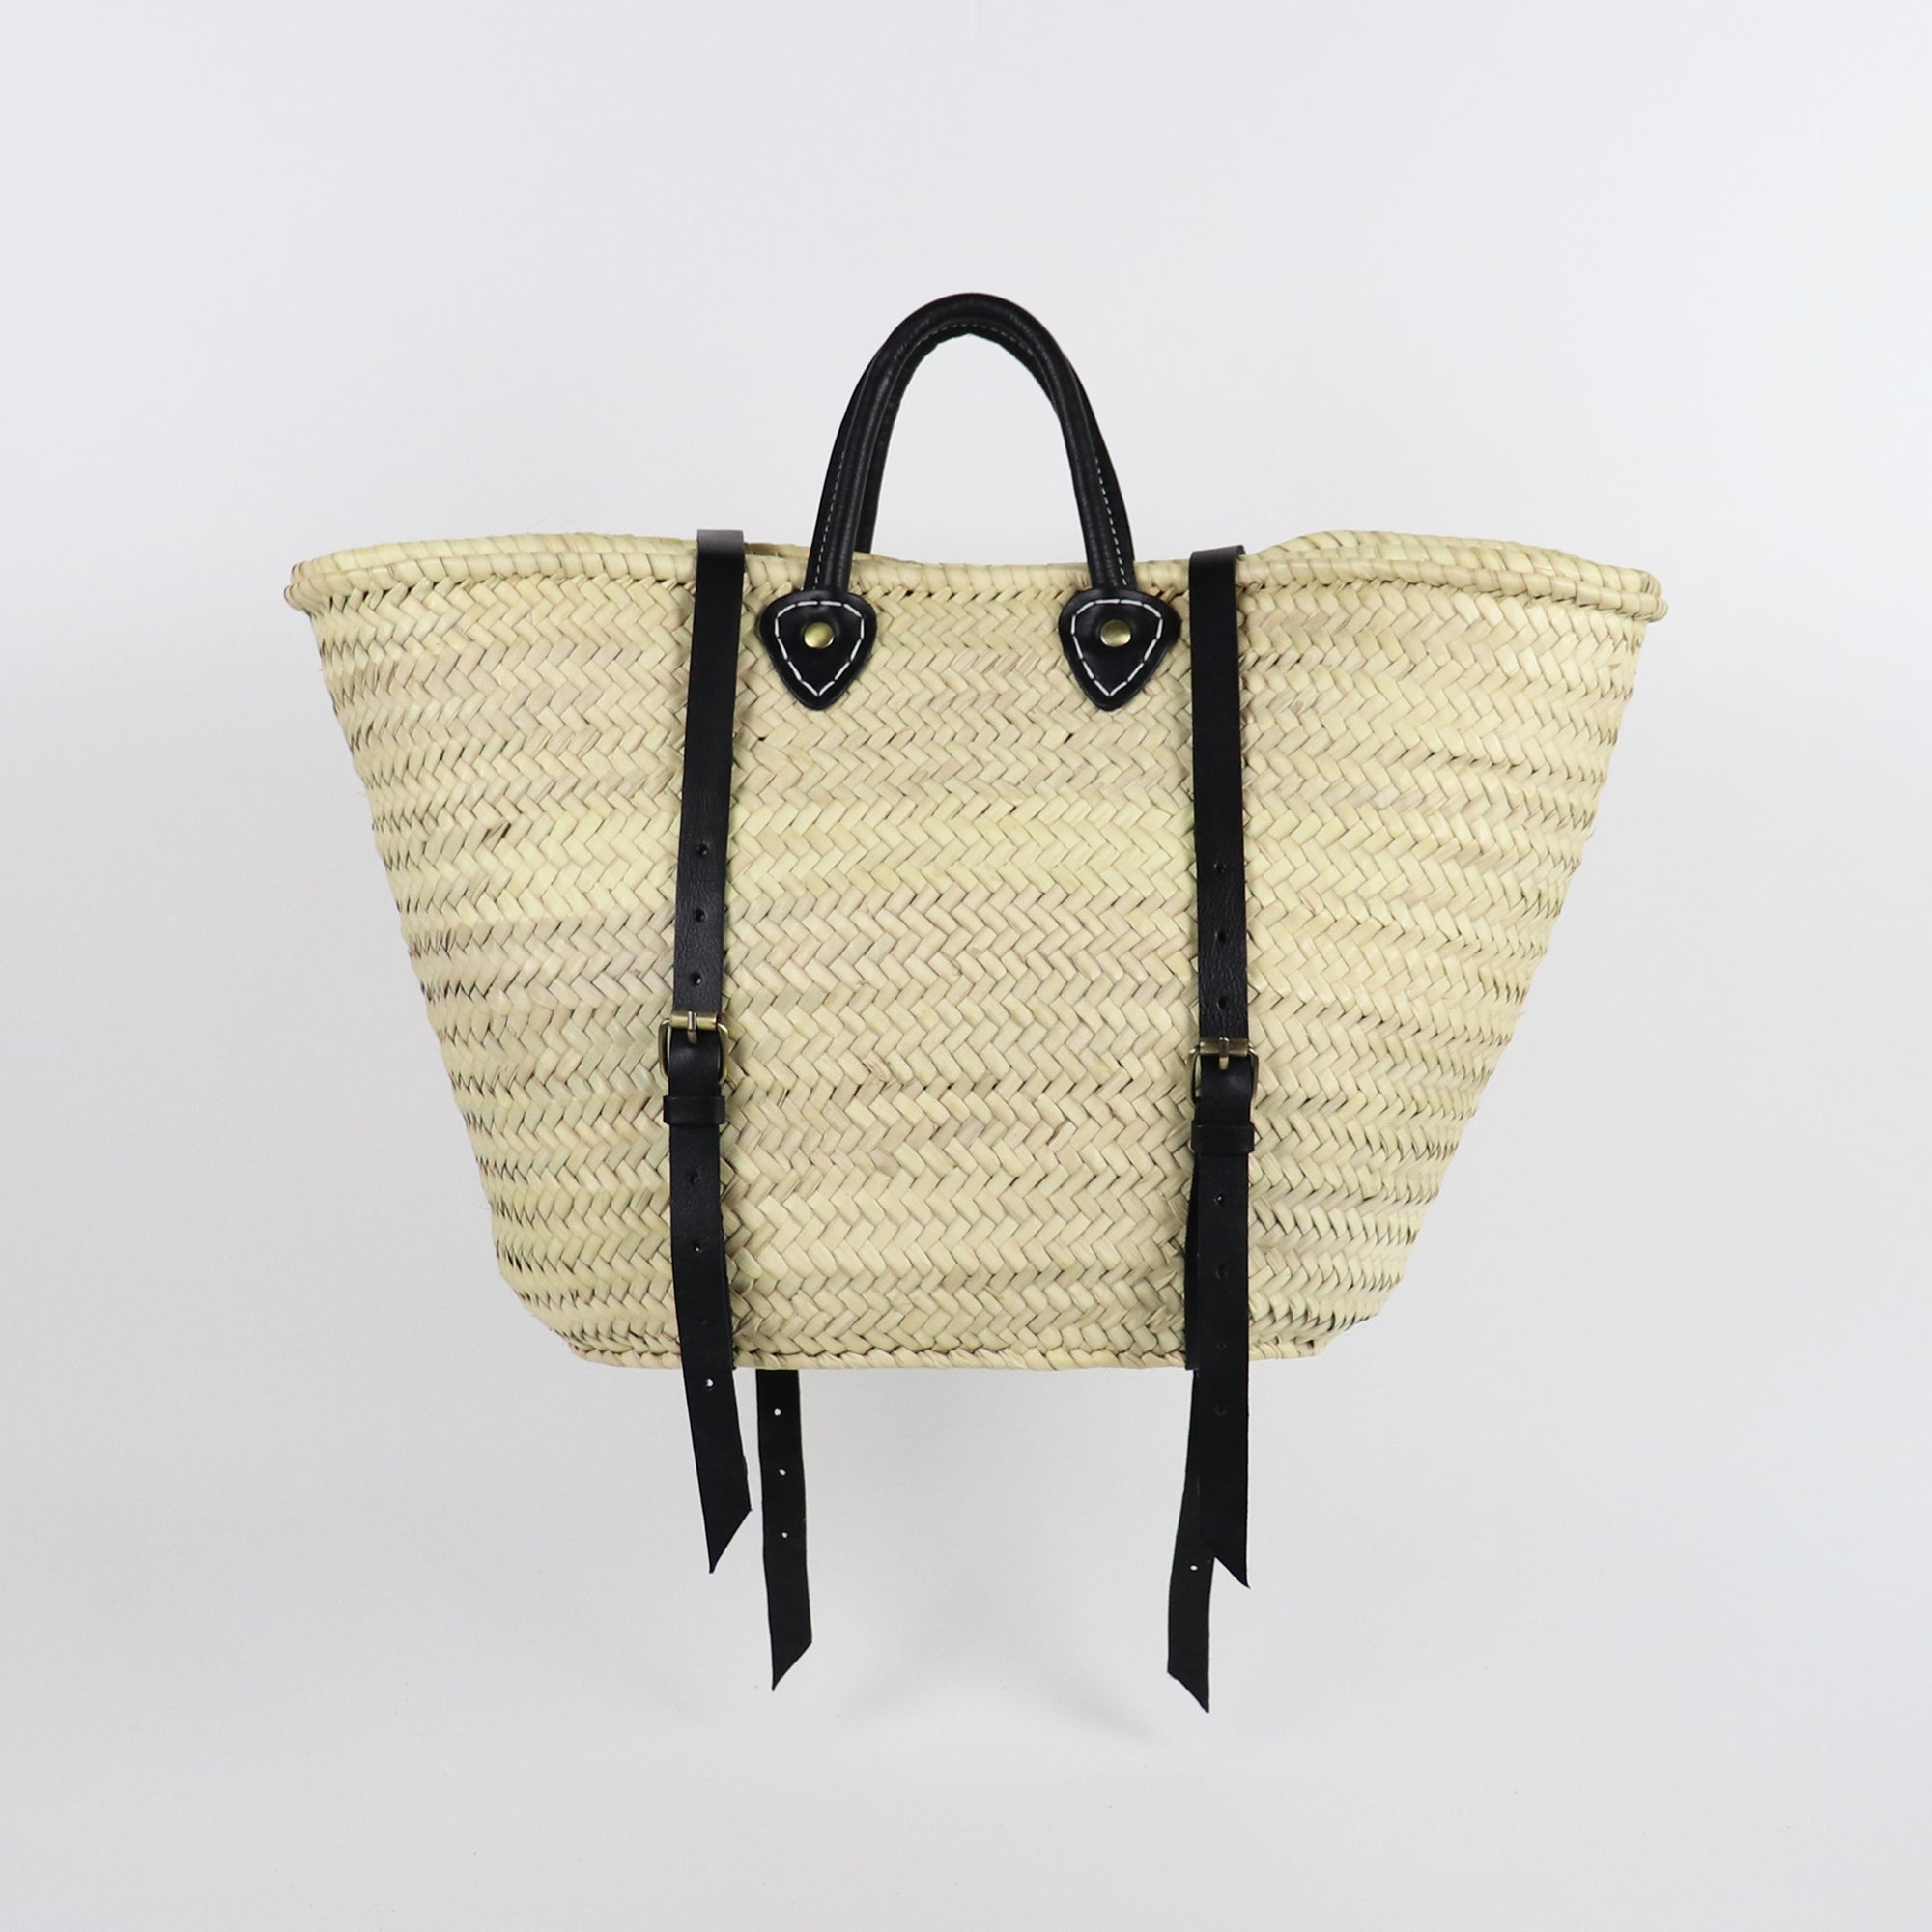 BLACK Straw backpack in traditional french basket shape and leather handles